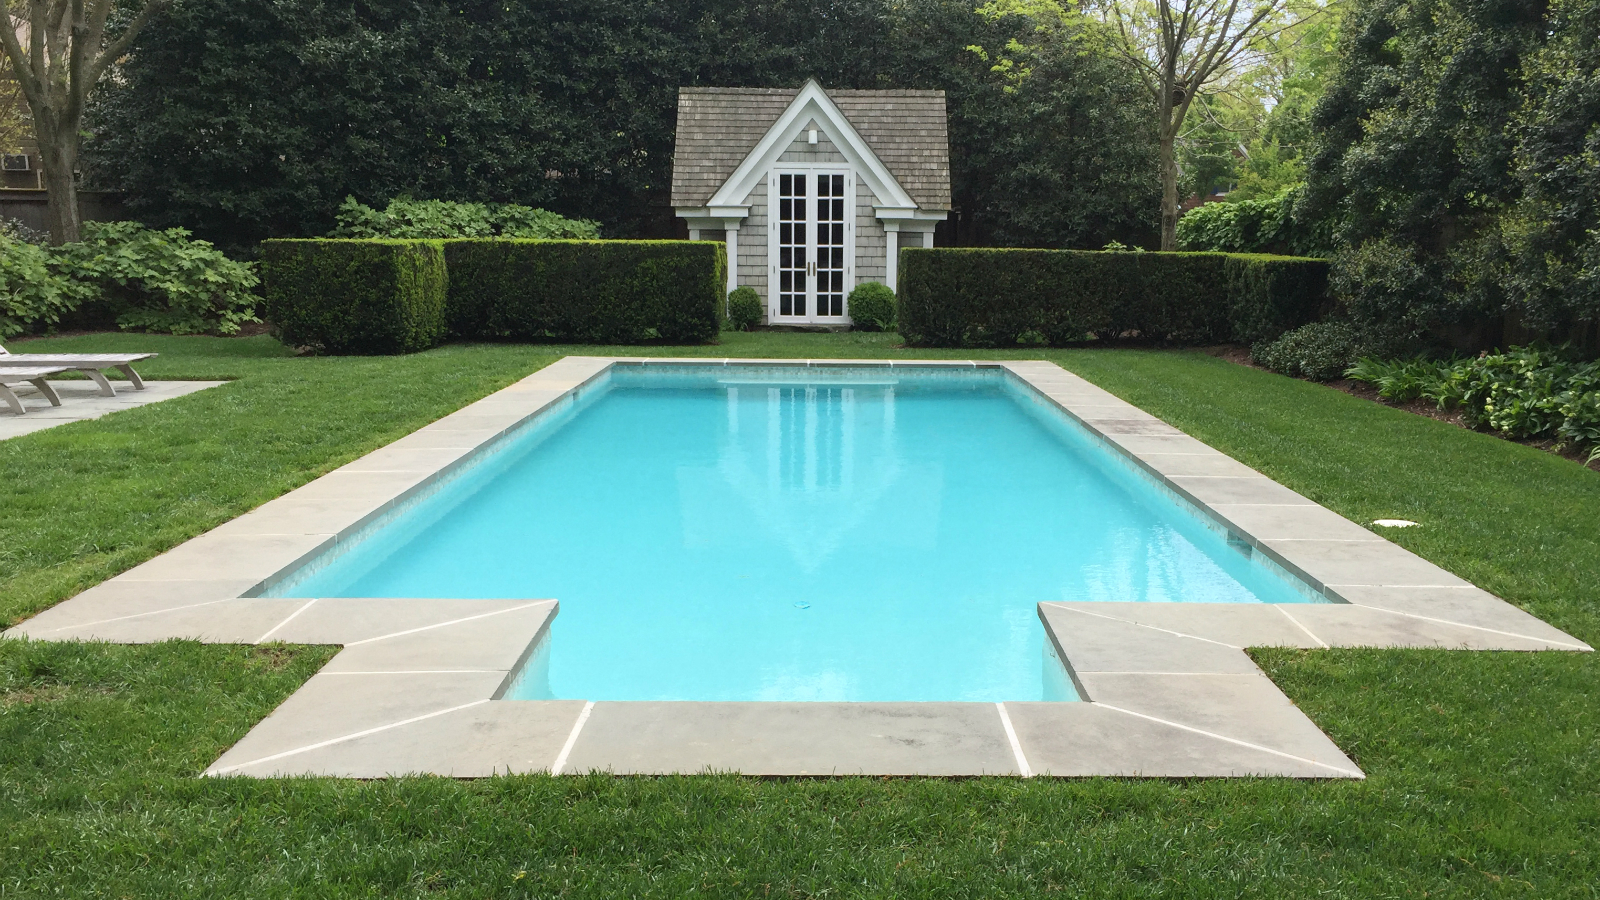 187_mason-from-steps-e Custom Swimming Pool Design, Renovation & Inspection - Carter Aquatics